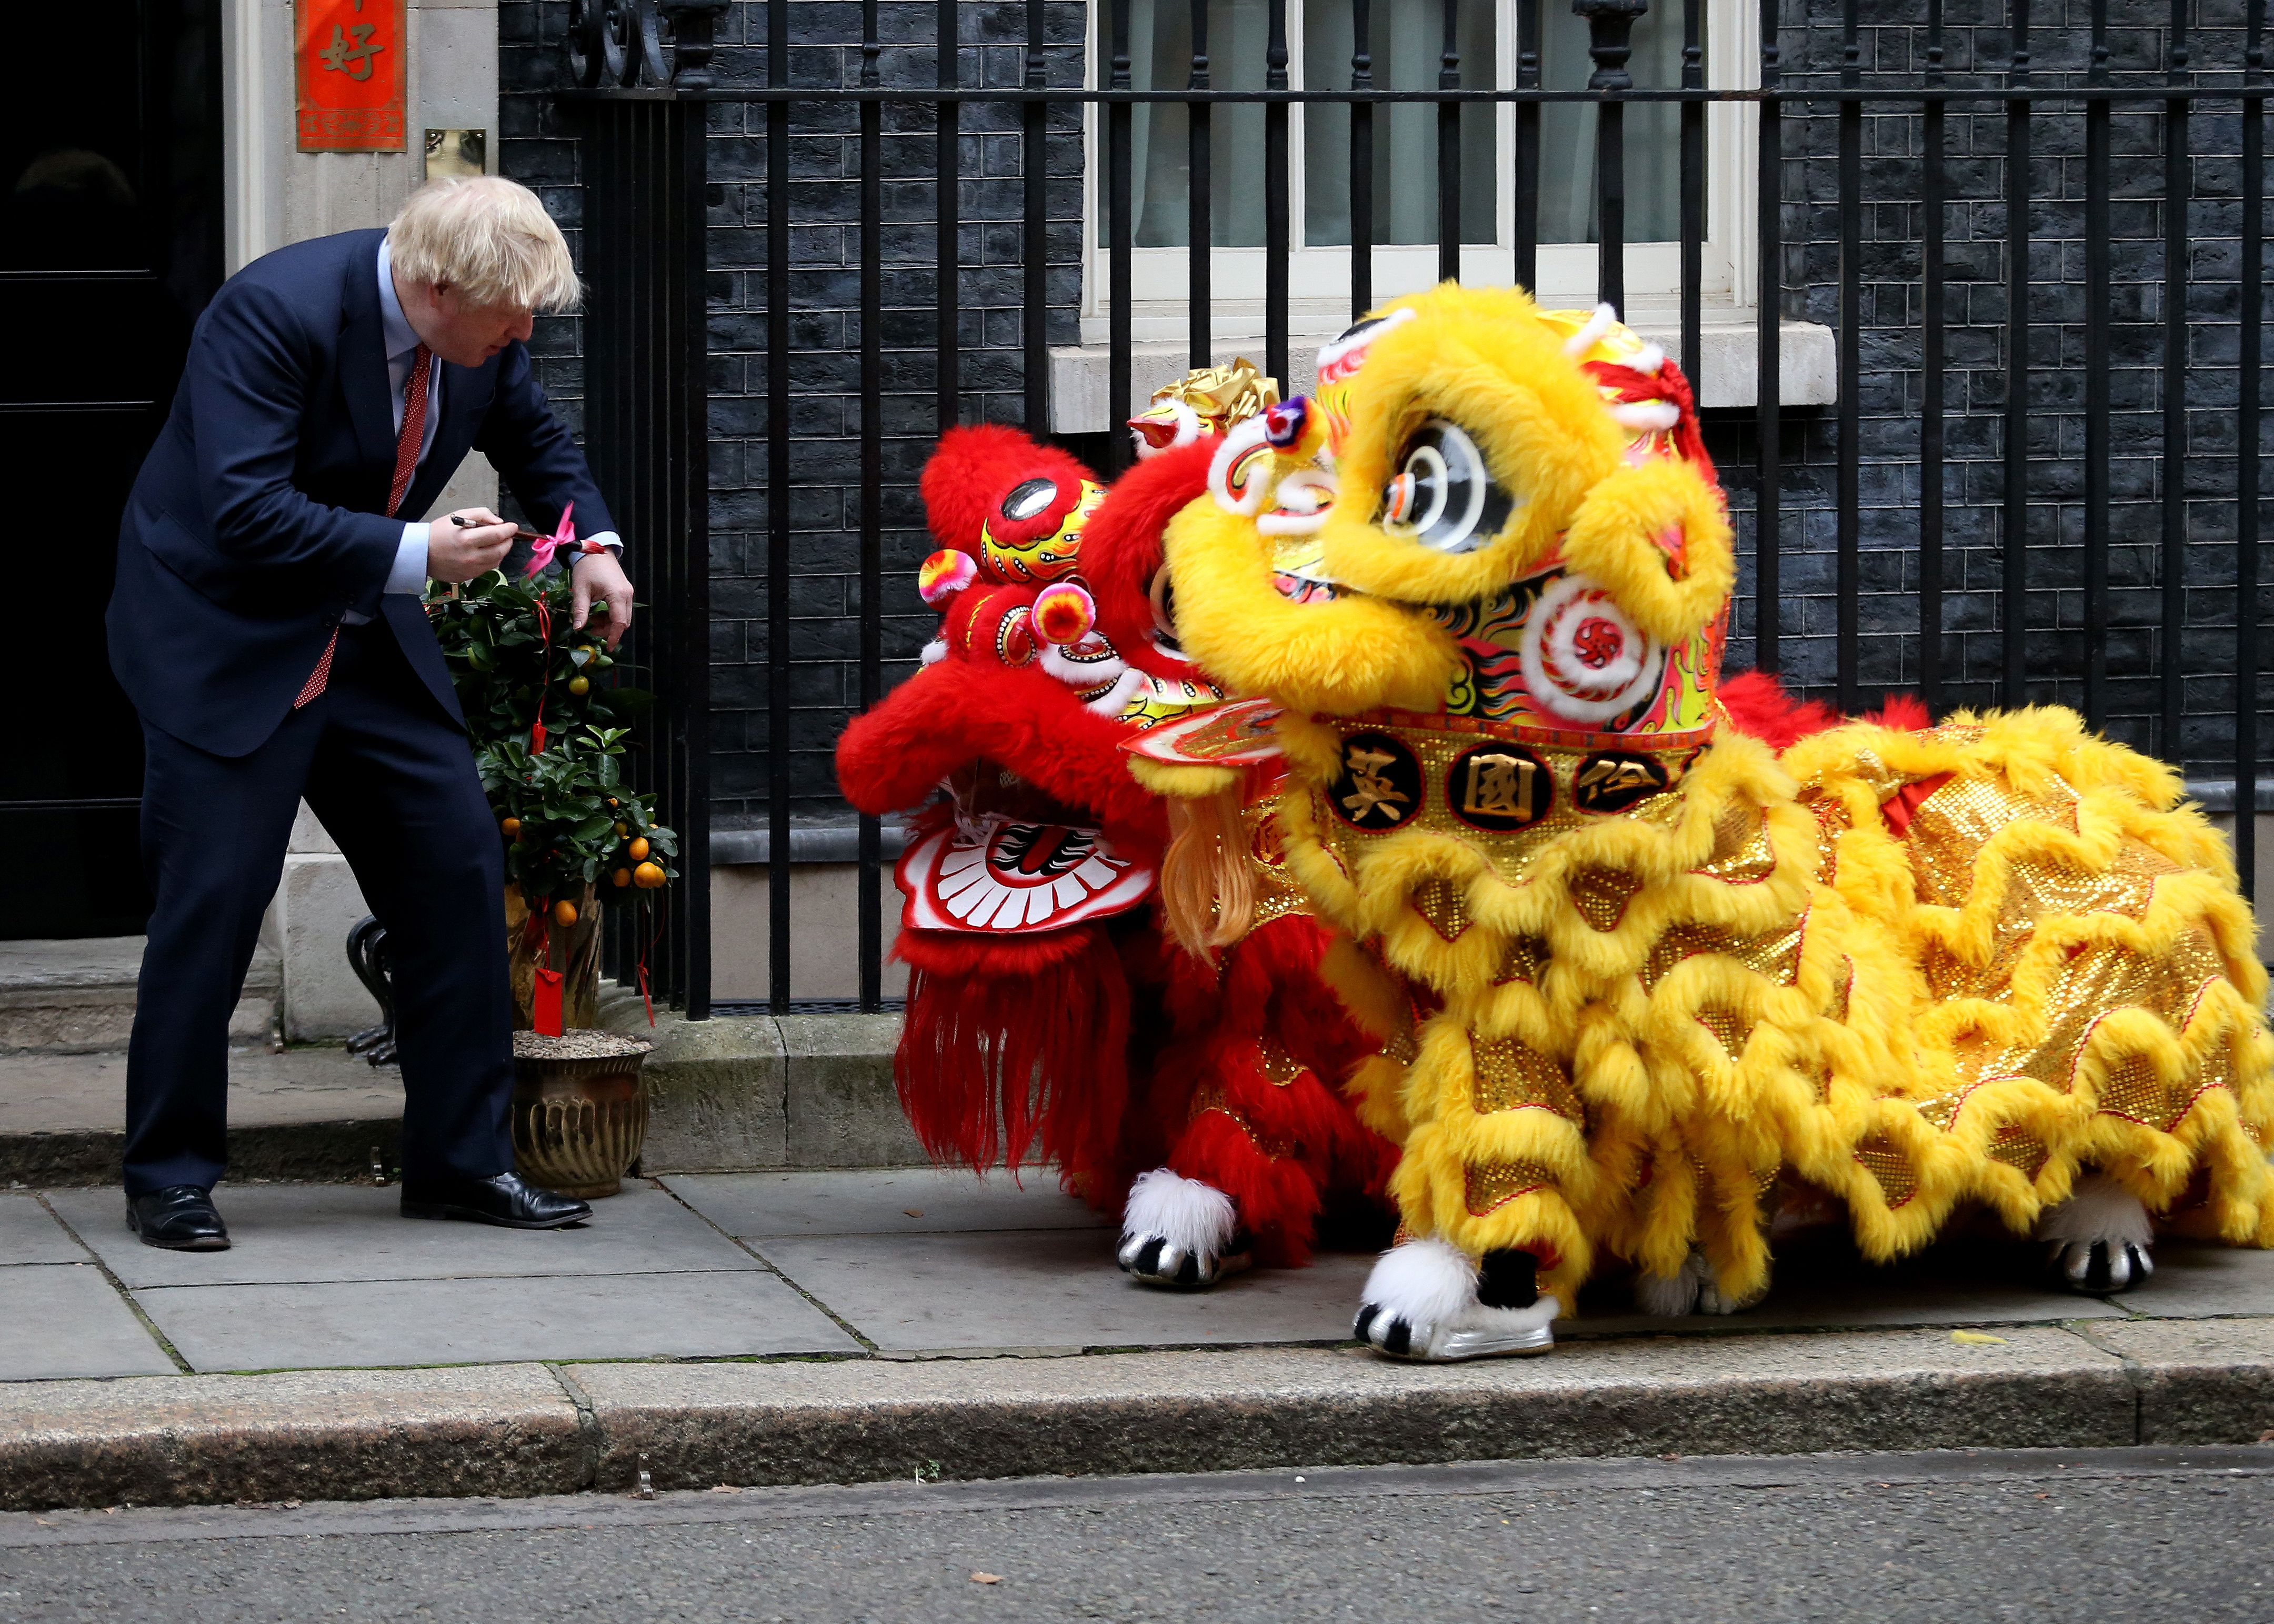 In this image, Boris Johnson greets two lions for Lunar New Year